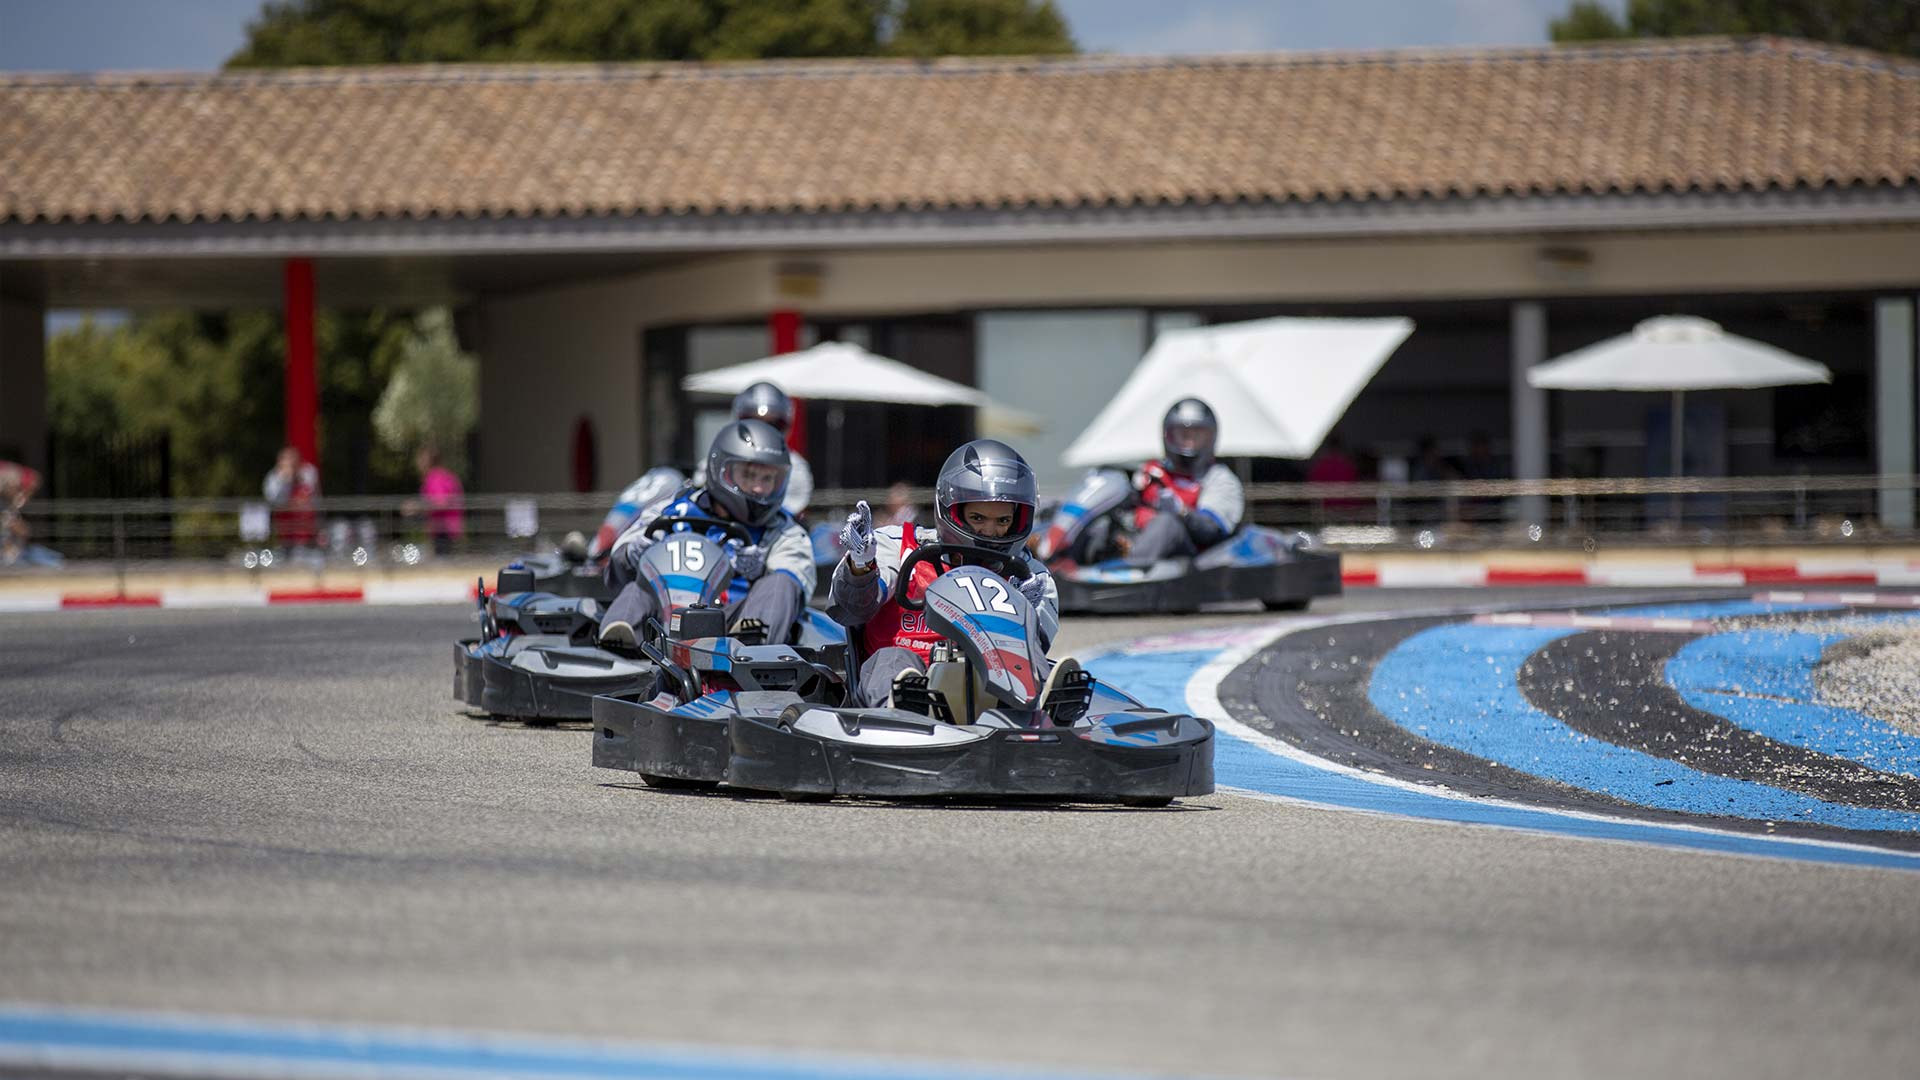 challenge karting course